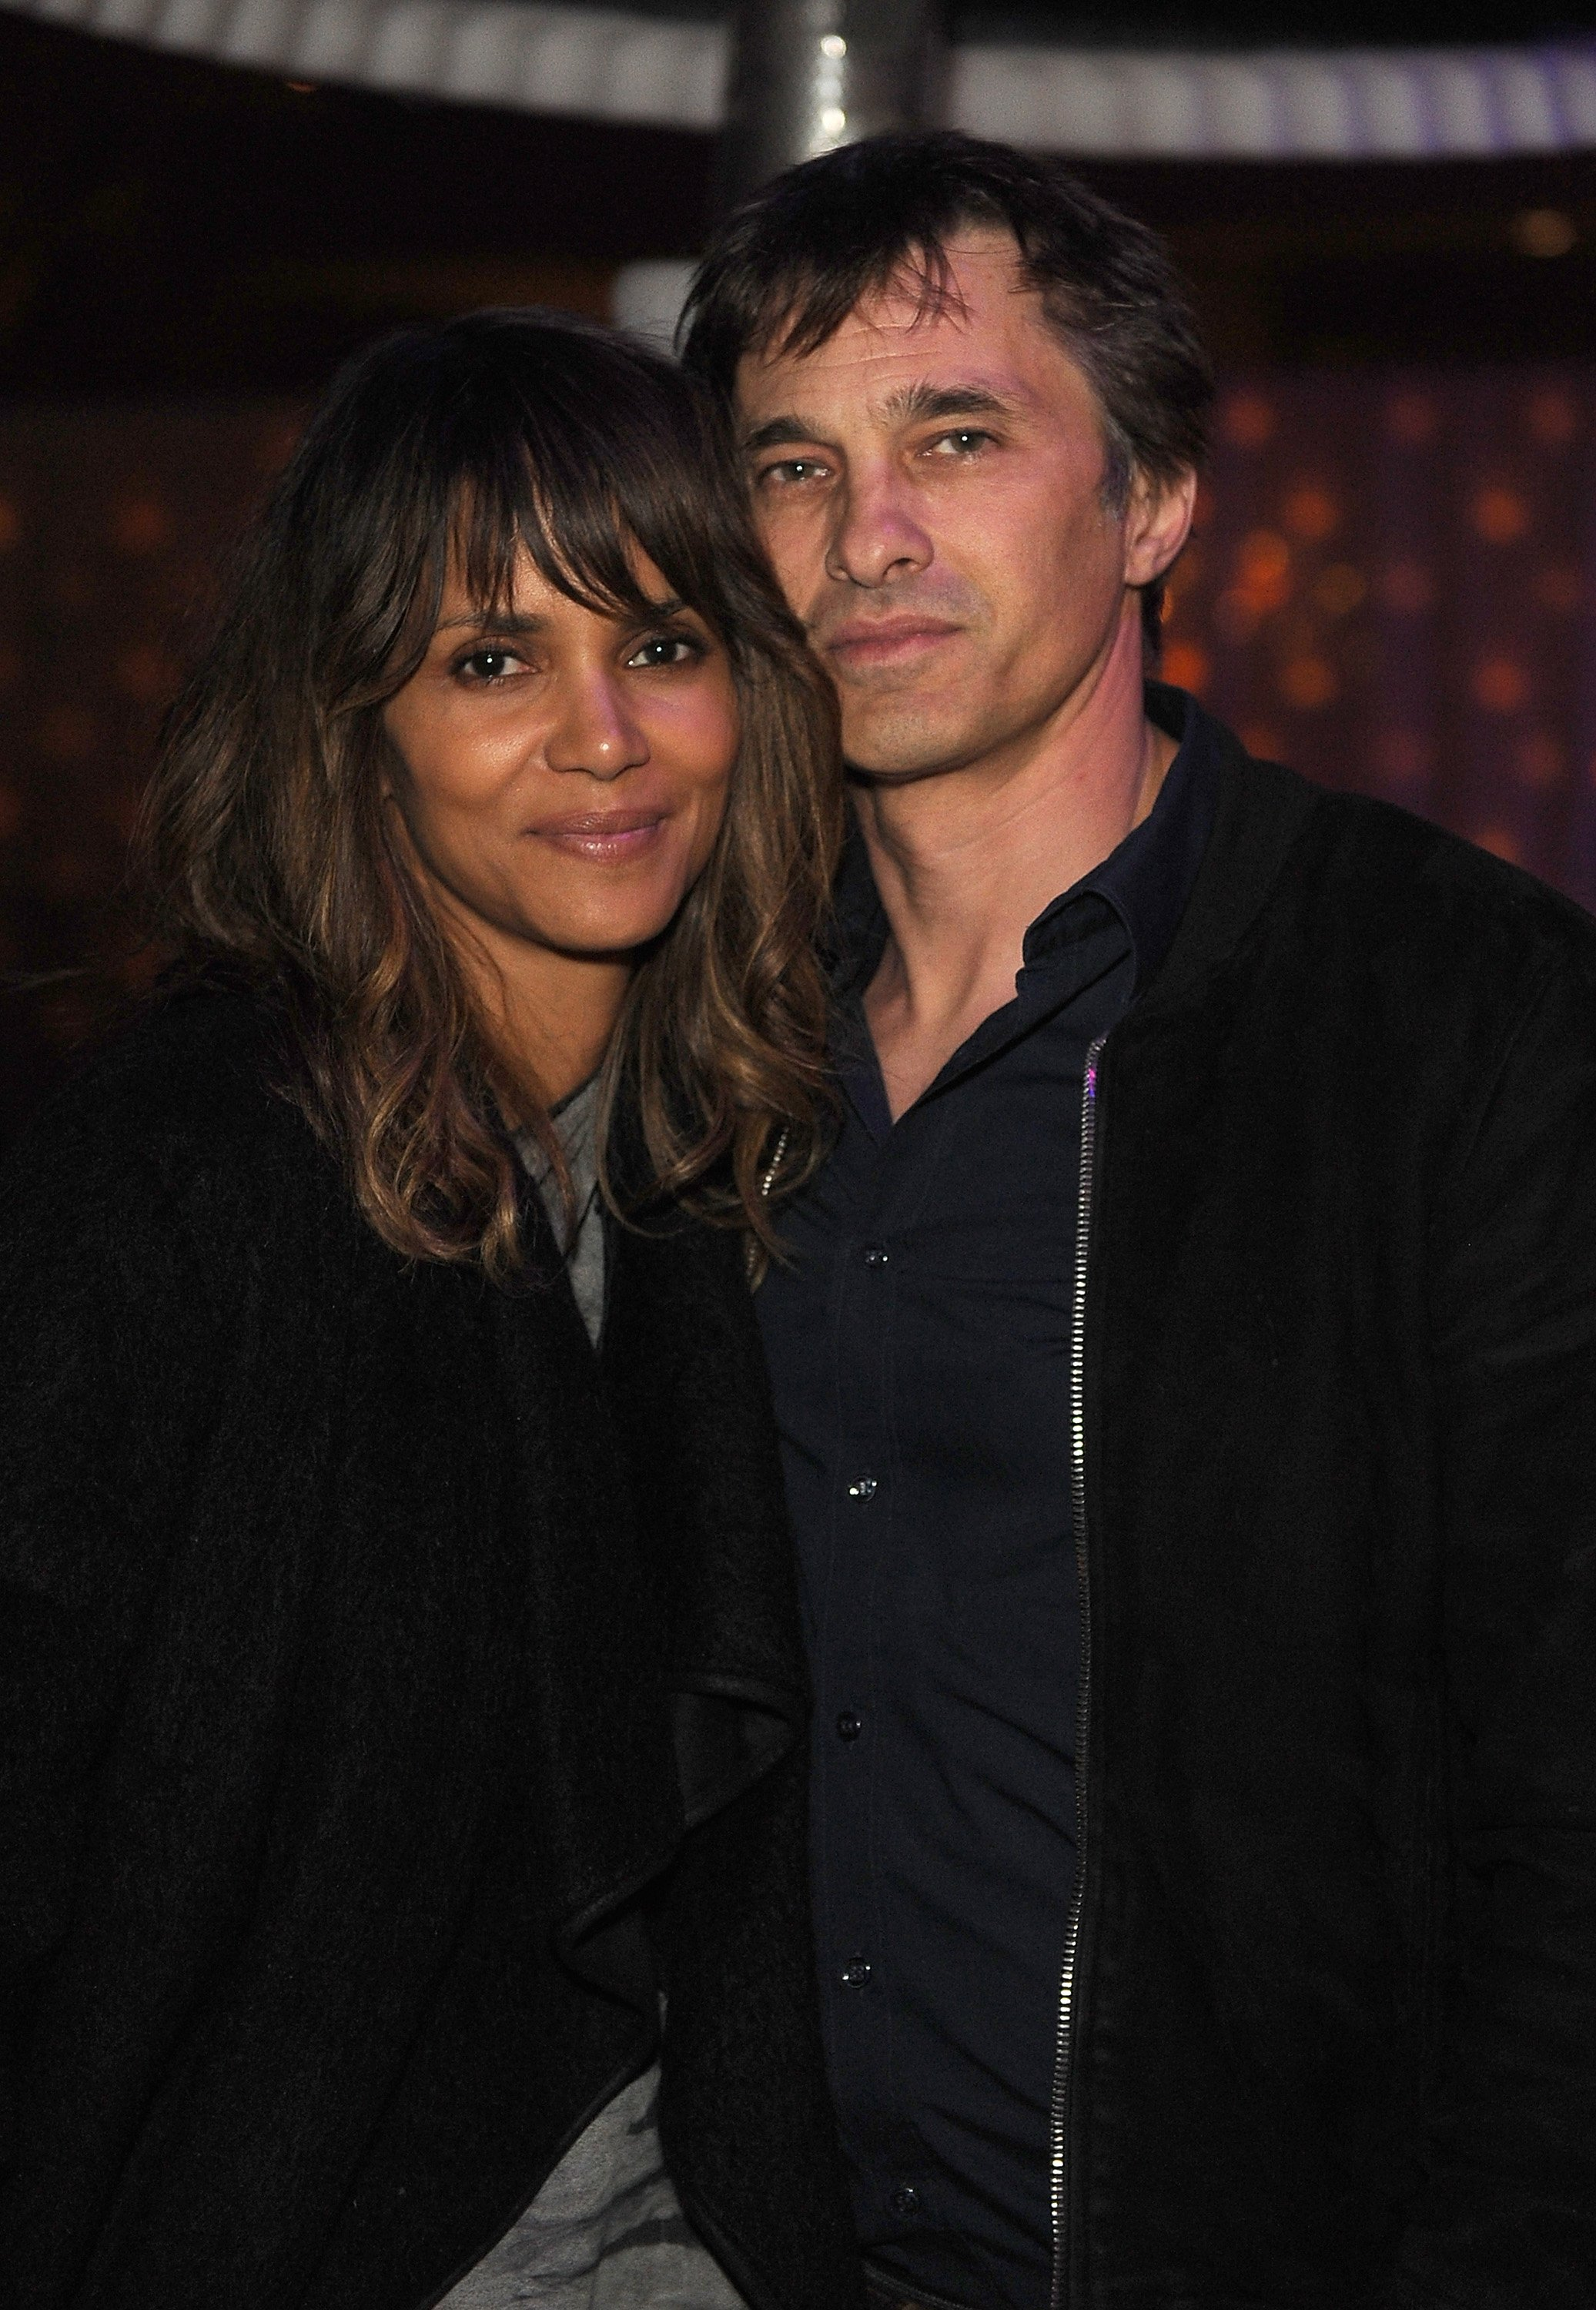 Halle Berry and Olivier Martinez at the Treats! Magazine Pre-Oscar Party at the Treats! Villa on February 21, 2015 in Los Angeles, California. | Source: Getty Images